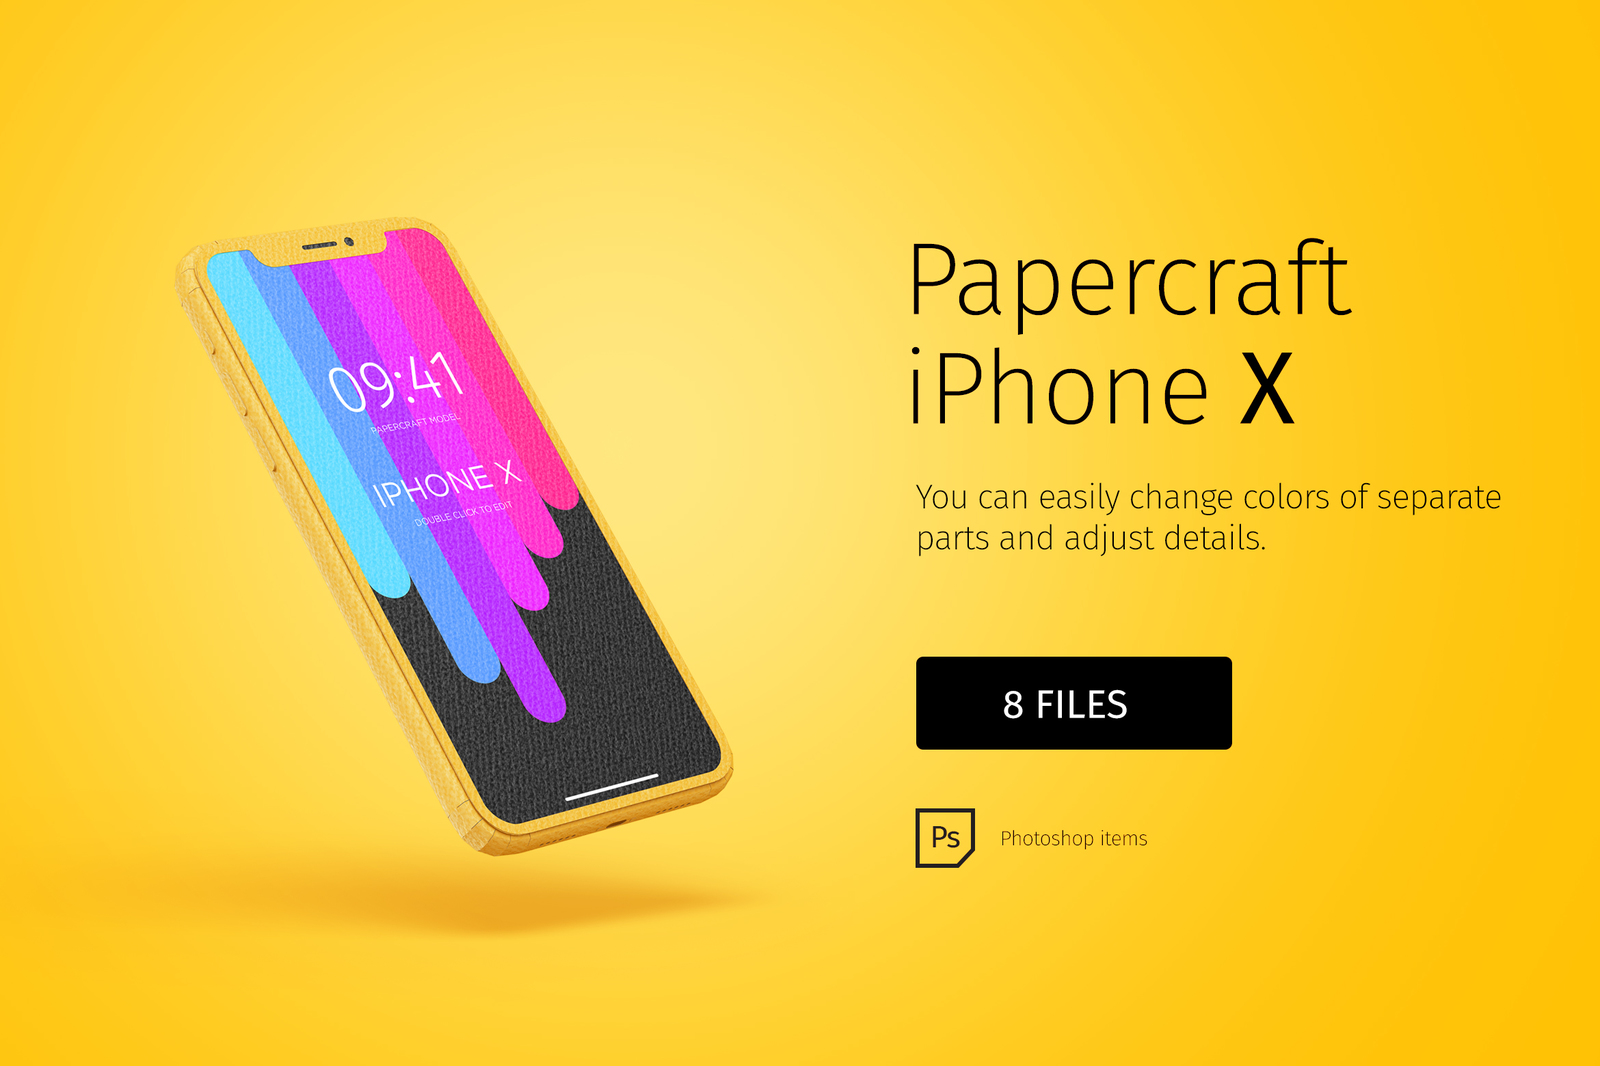 Papercraft iPhone X mockup